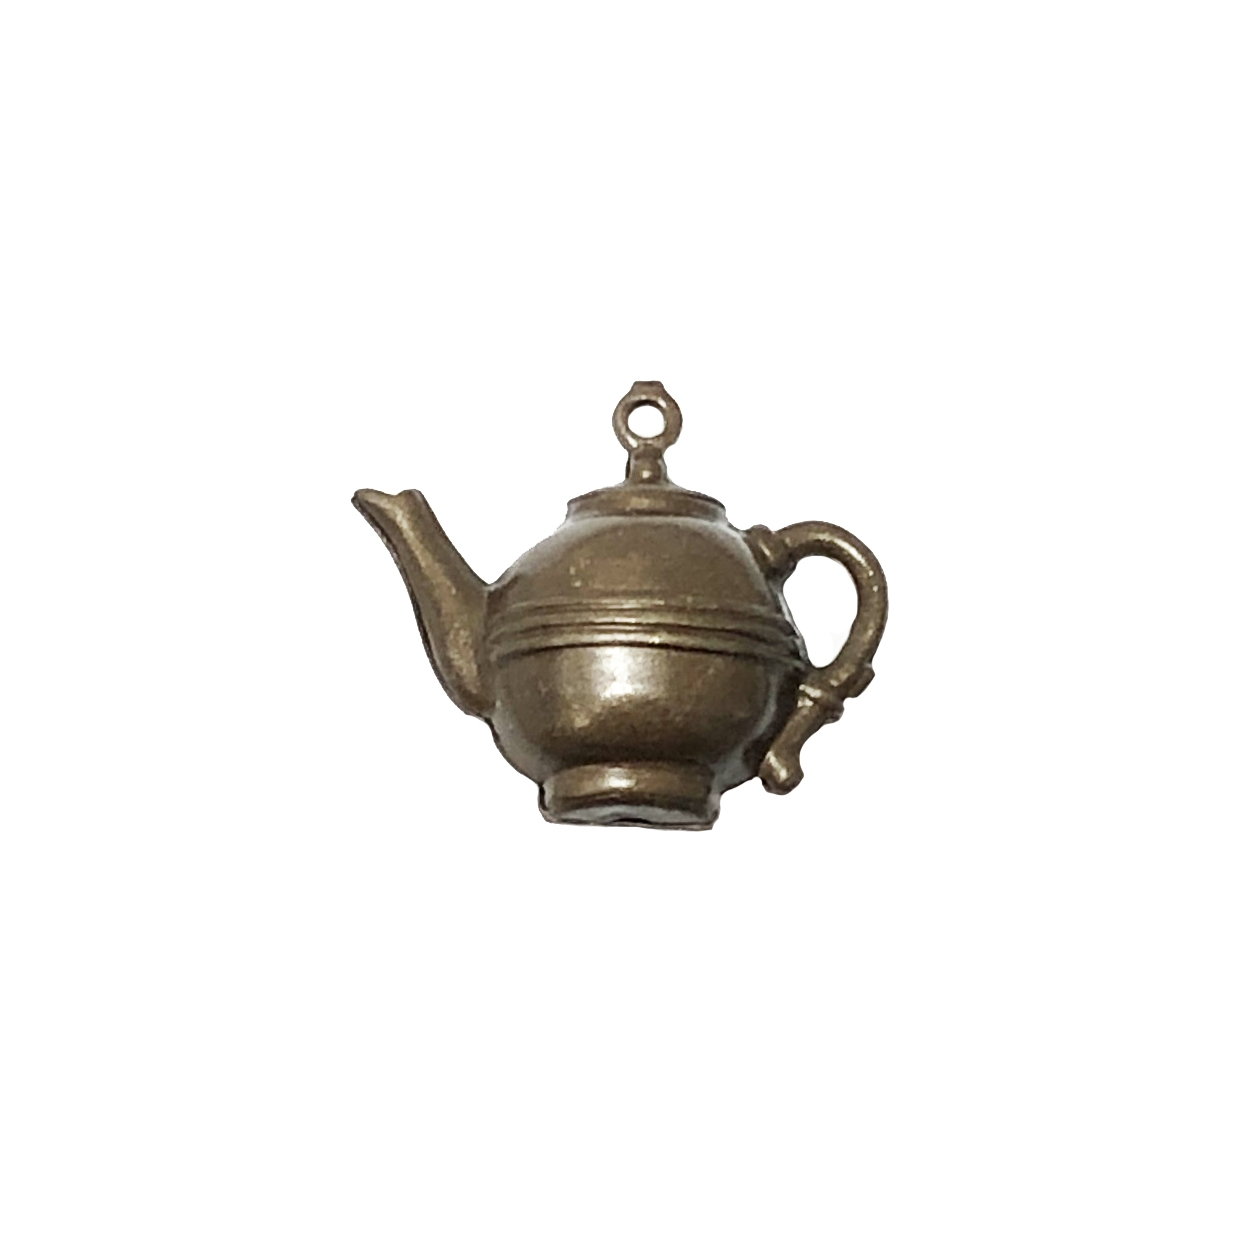 teapot, choxie, charms, pendant, vintage style, 3d hollow, brass, tea, hollow charm, tea pot, pot, chocolate brass, us made, nickel free, B'sue Boutiques, vintage supplies, jewelry supplies, jewelry findings, 14x21mm, brass, 09879